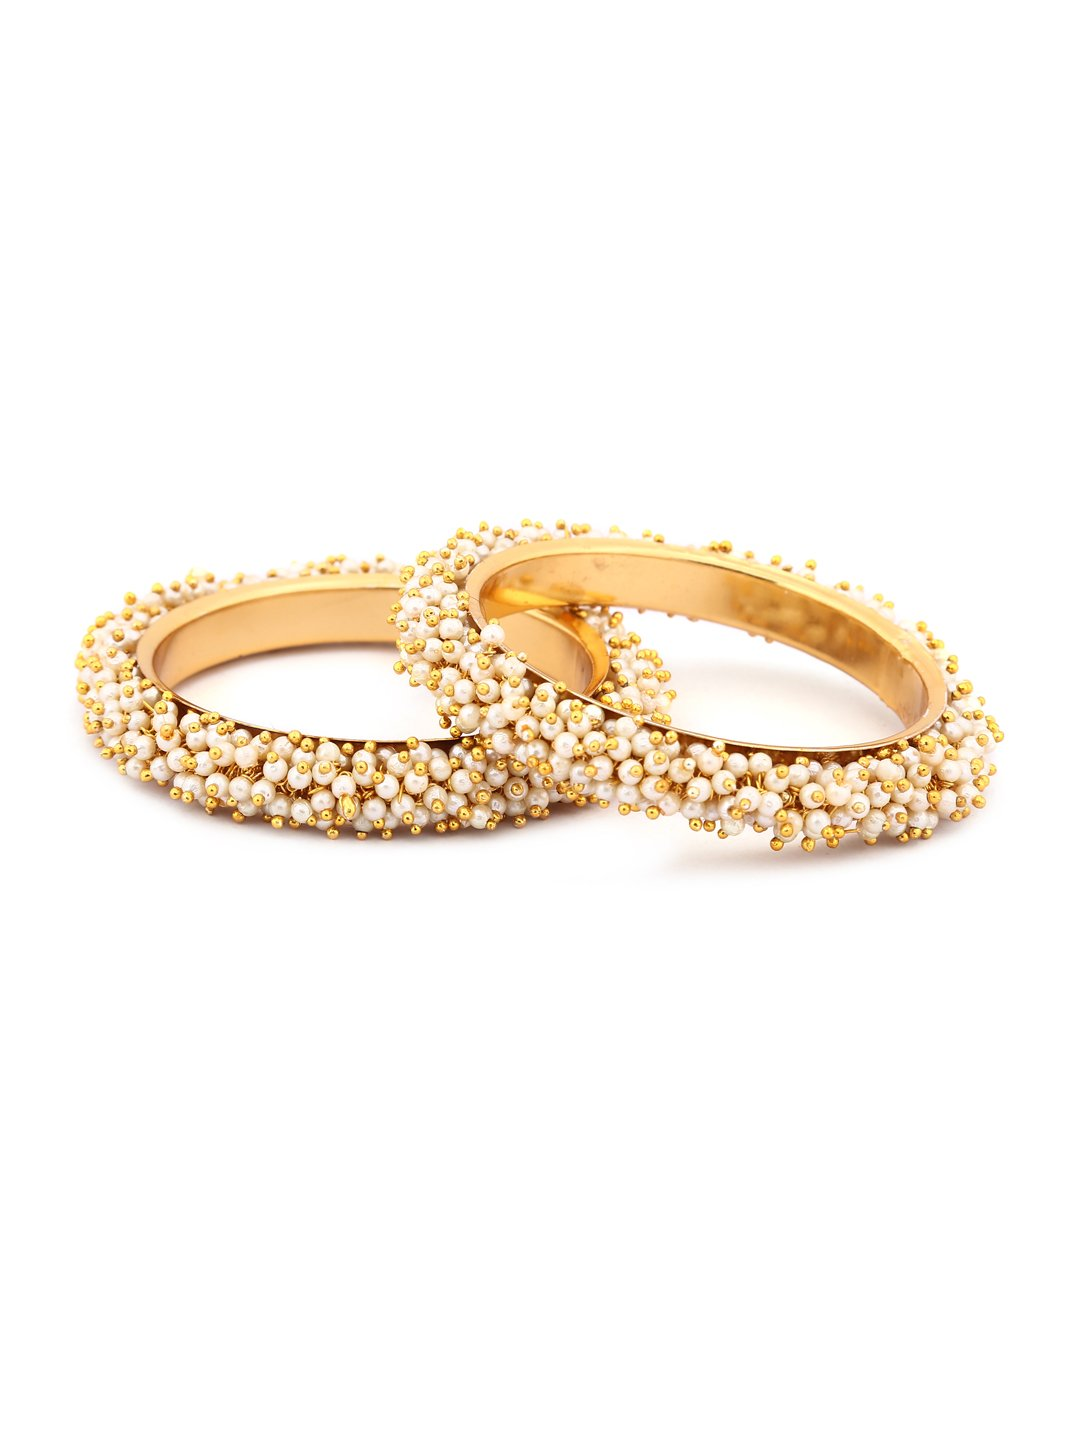 Rubans Gold Plated Traditional Indian Jewelry Bollywood Ethnic Wedding Bridal Pearls Set of 2 Bangles for Women 2.6